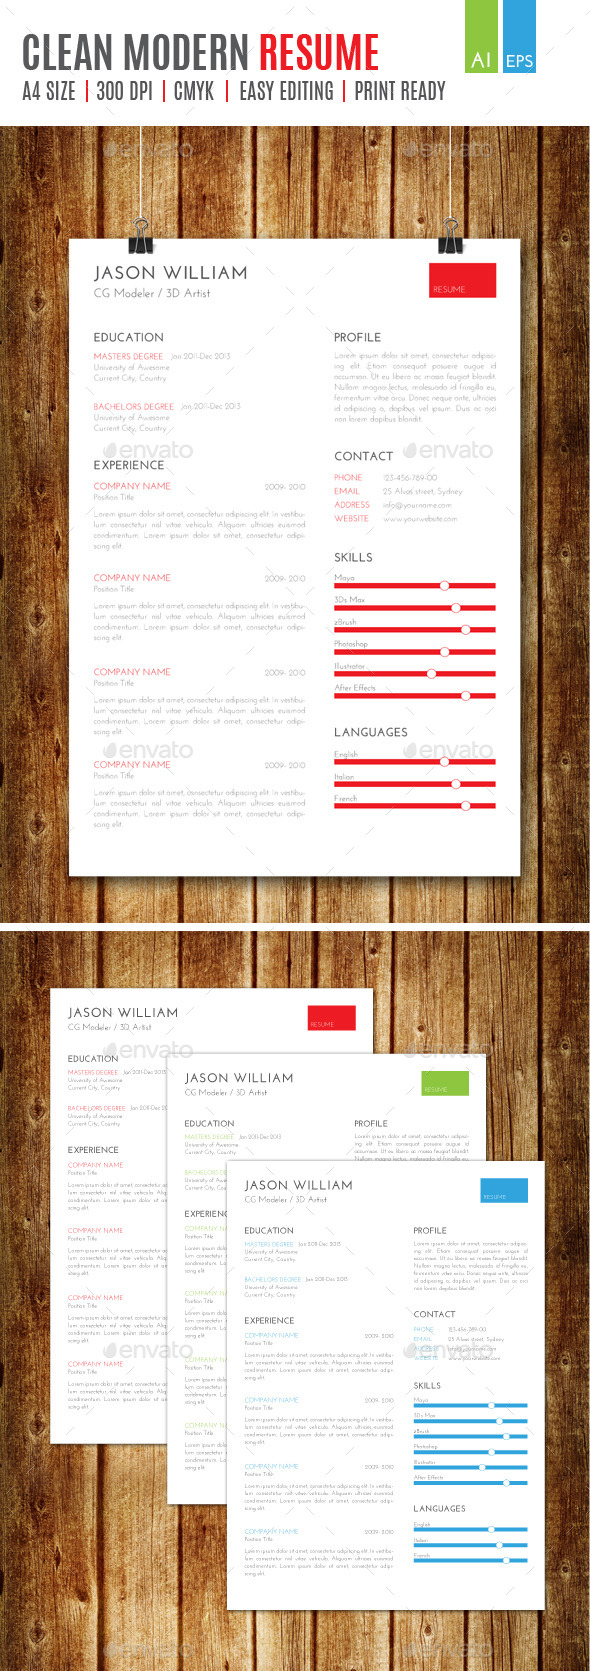 GraphicRiver Clean Modern Resume 9376249